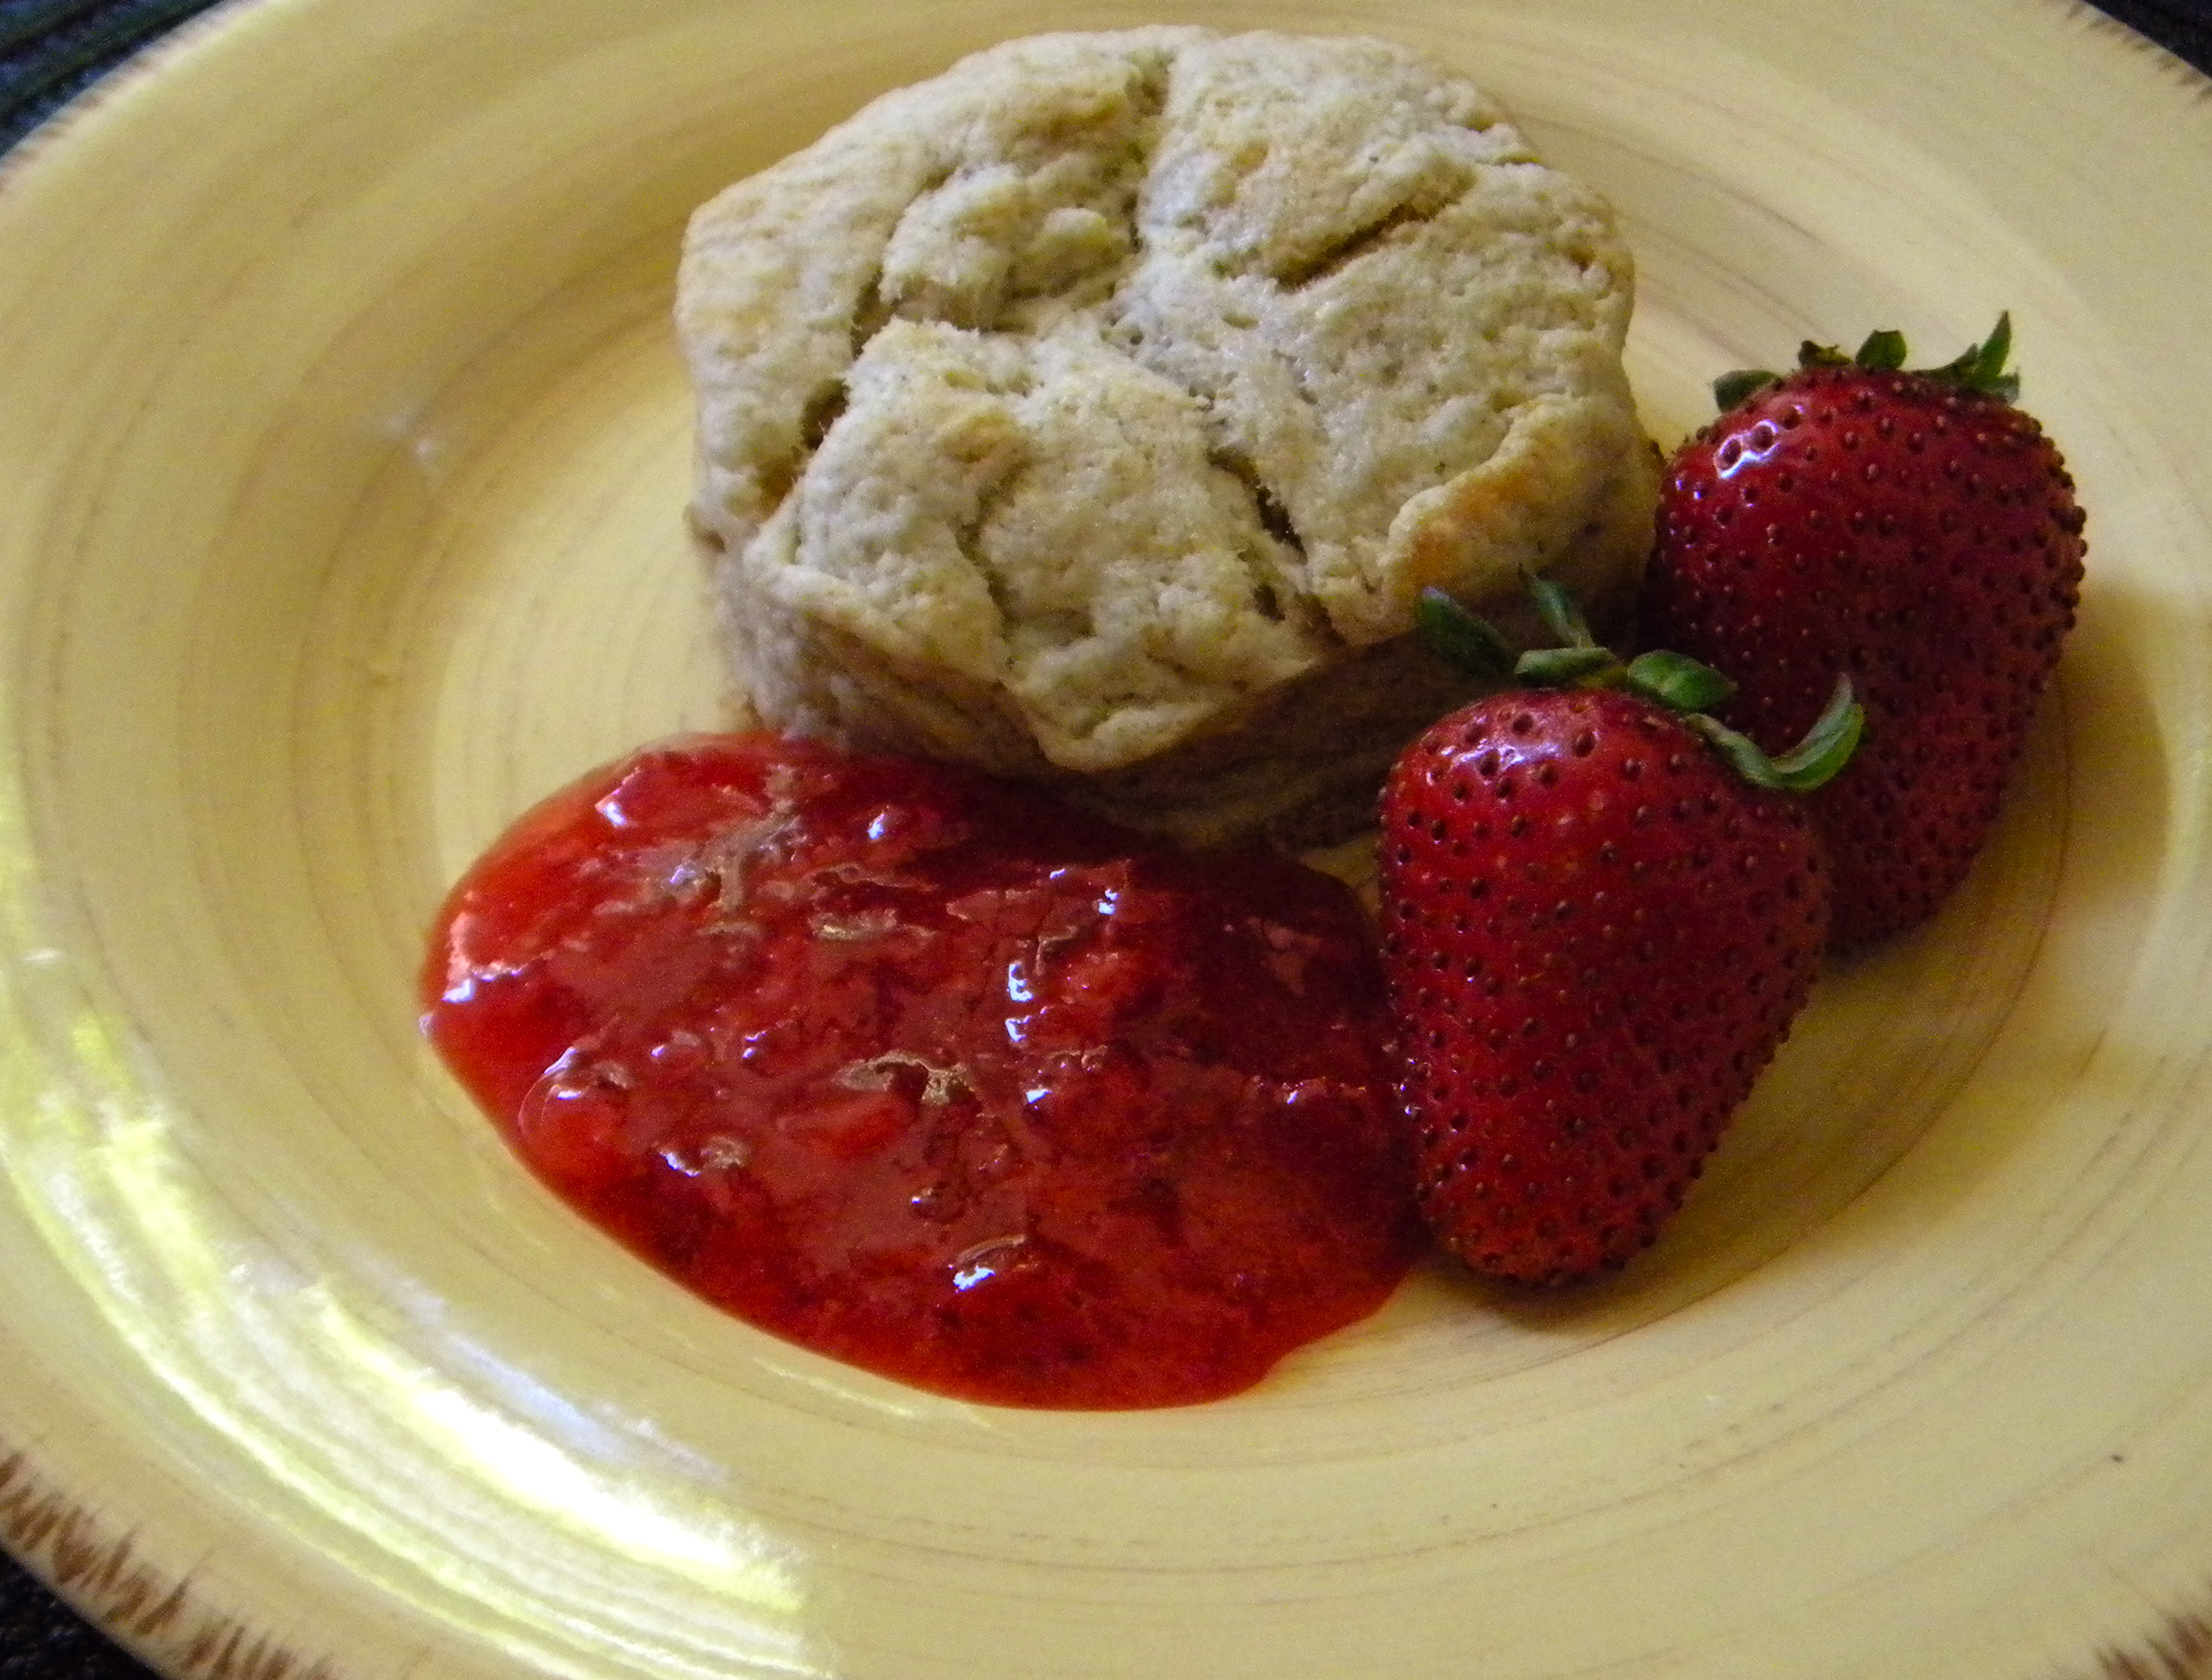 Homemade Buttermilk Biscuits with Strawberry Freezer Jam ...